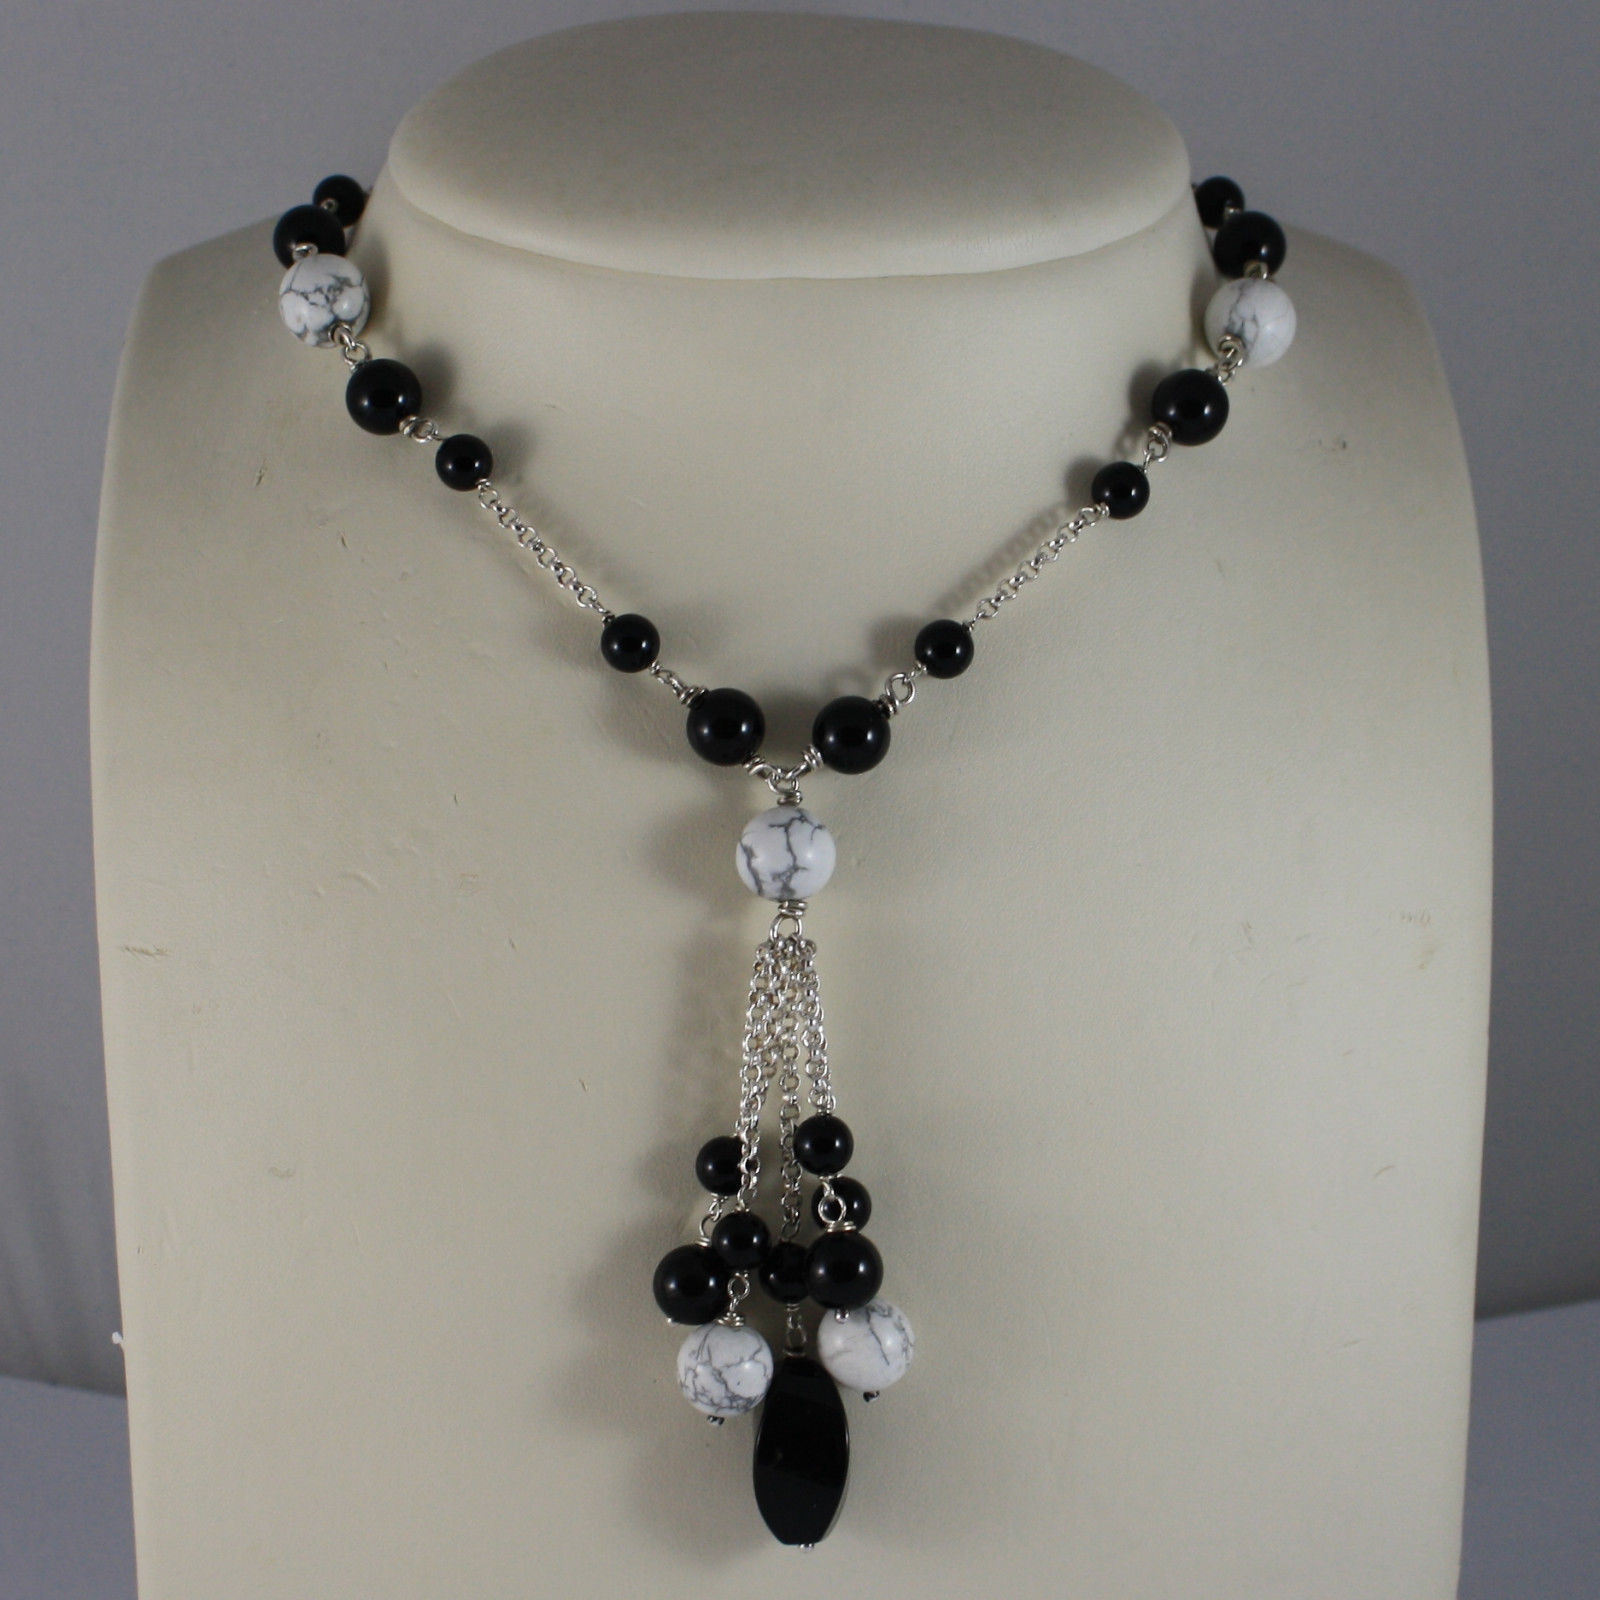 .925 RHODIUM SILVER NECKLACE WITH BLACK ONYX AND WHITE HOWLITE